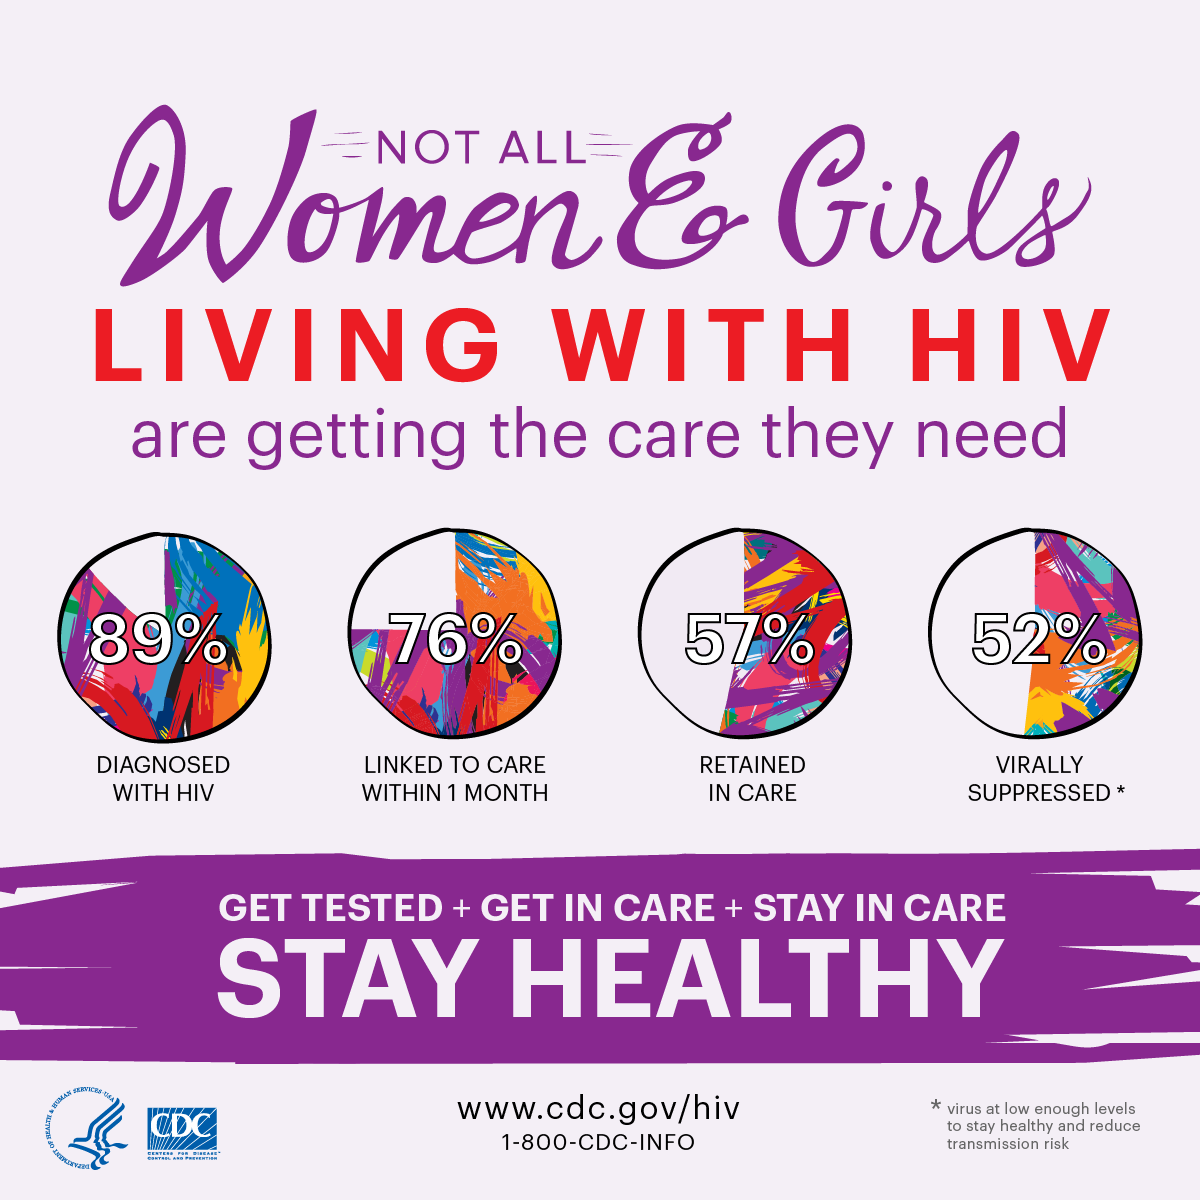 Not all women and girls who are living with HIV are getting the care they need. Of women who are living with HIV, 89% have received a diagnosis, 76% were linked to care within 1 month, 57% are retained in care, and 52% are virally suppressed (i.e., have a low enough level of the virus to stay healthy and reduce transmission risk).